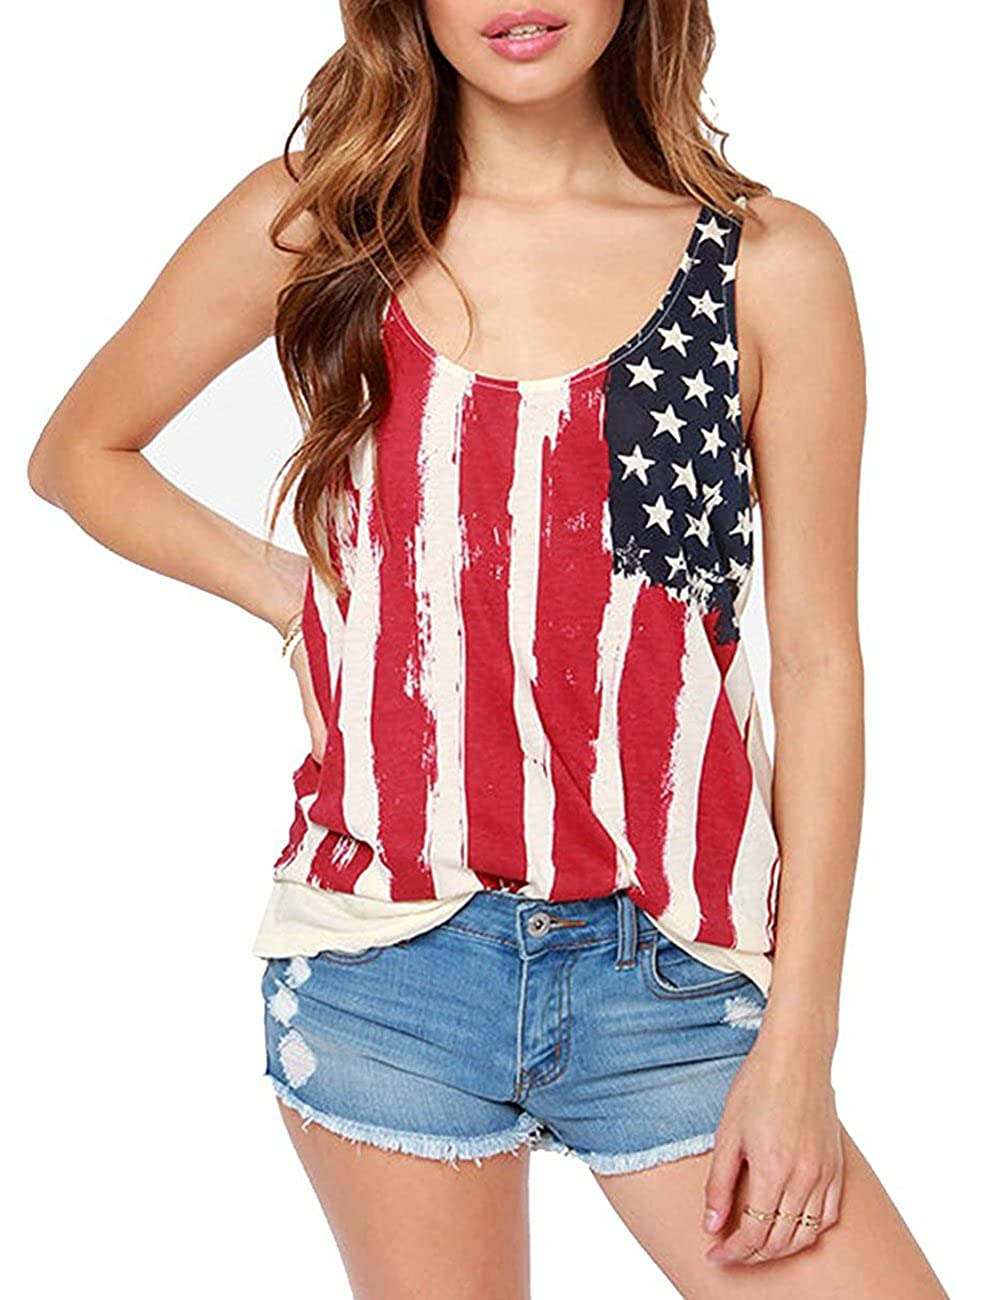 d43261ea American flag tank top. Material: 100% Cotton Summer camisole, soft and  comfortable. Perfectly with a pair of jeans or shorts for those summer  outings